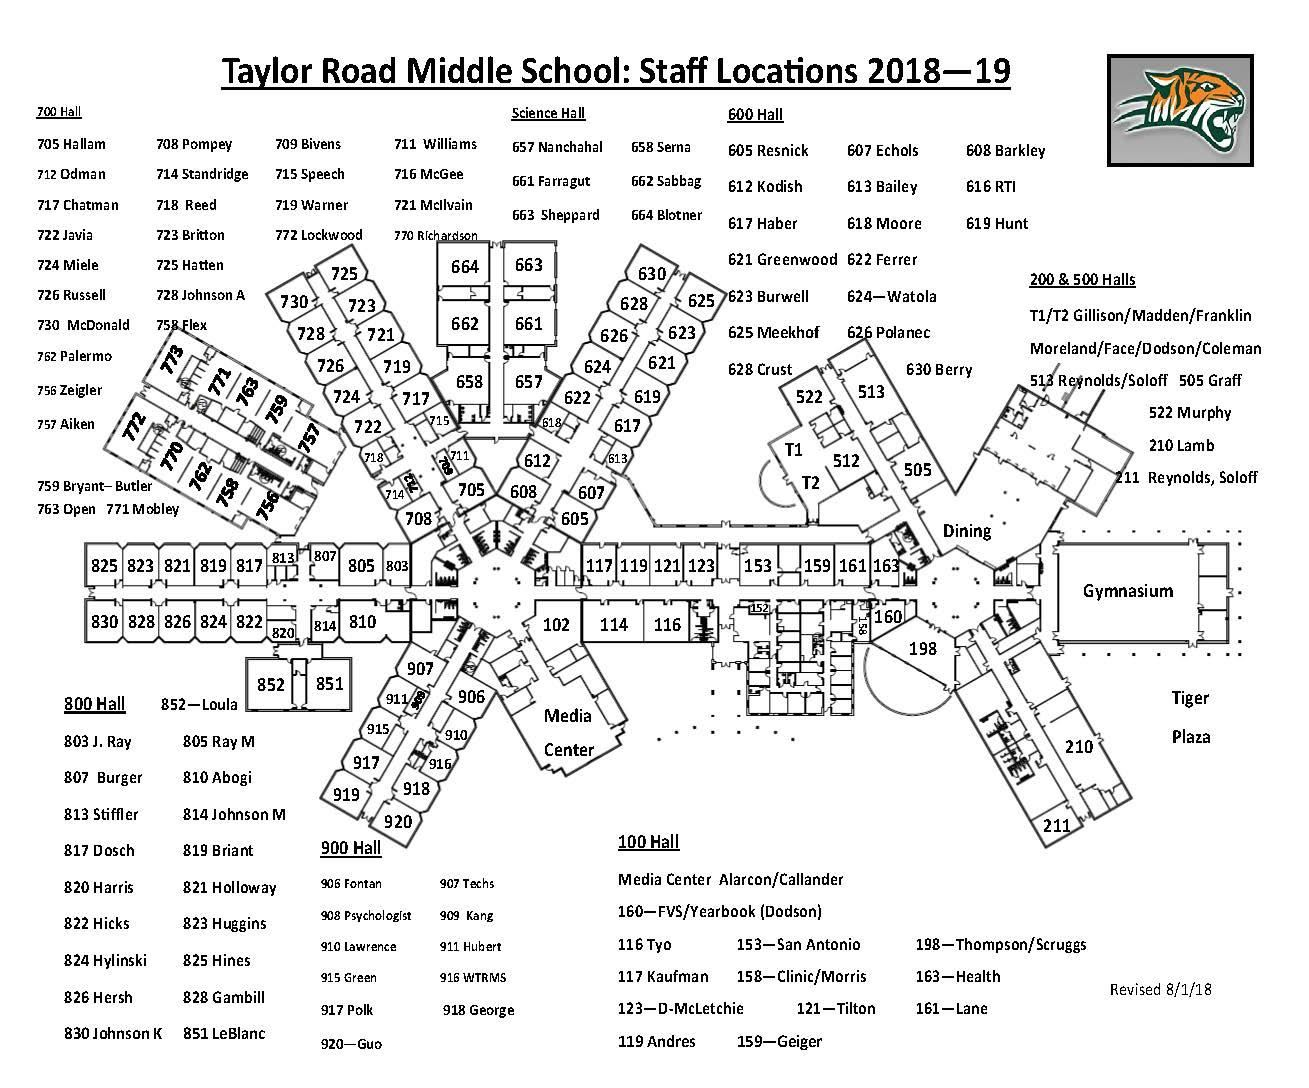 Link to TRMS Map